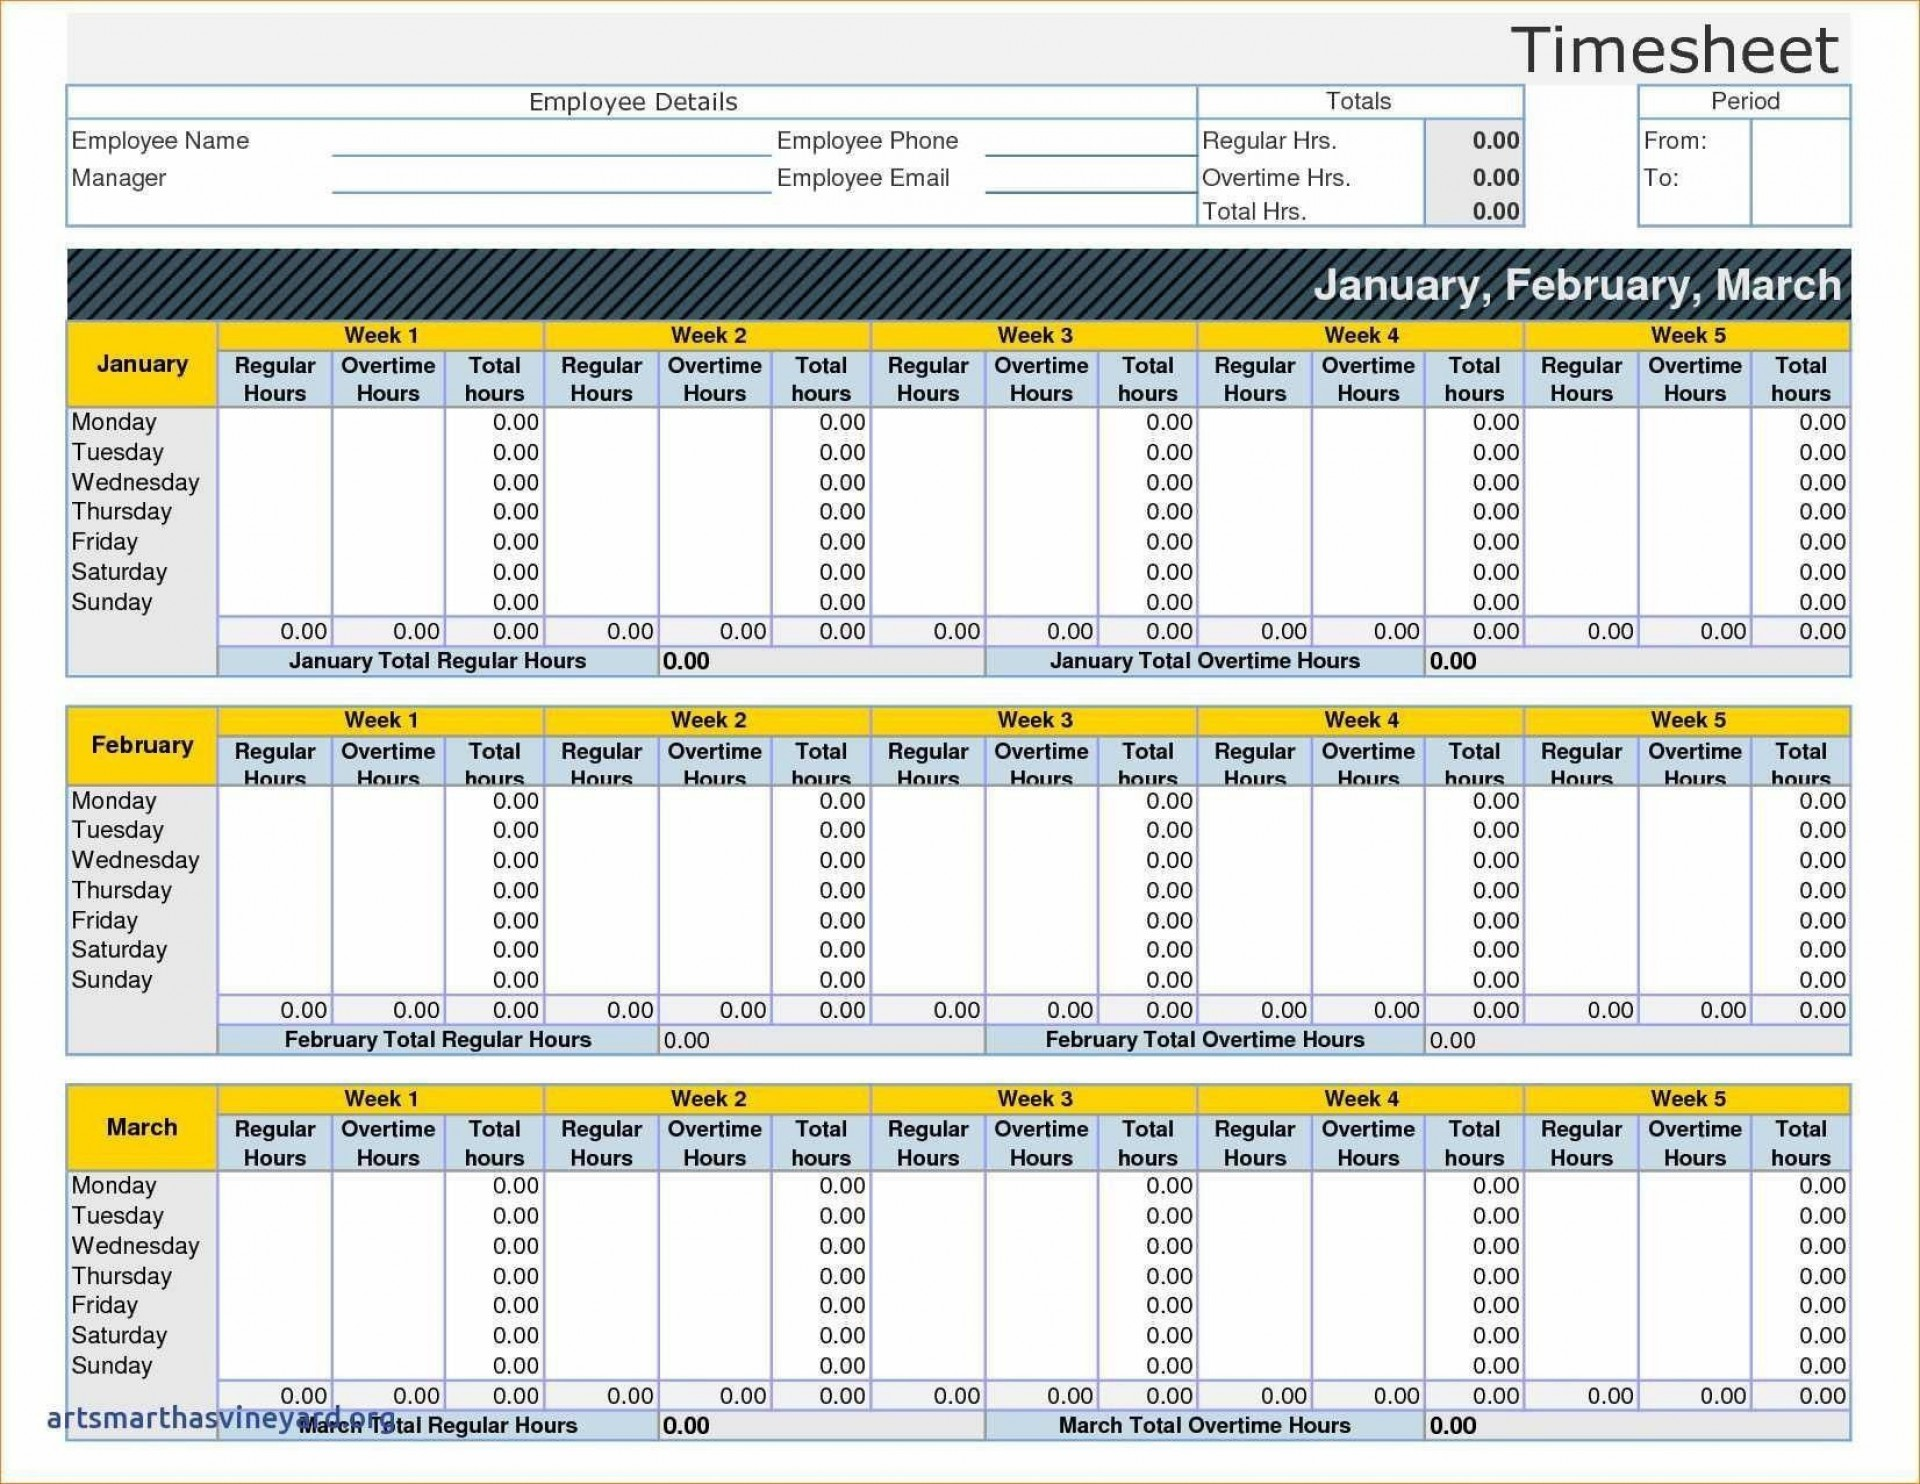 002 Fearsome Multiple Employee Timesheet Template High Resolution  Schedule Job Excel1920